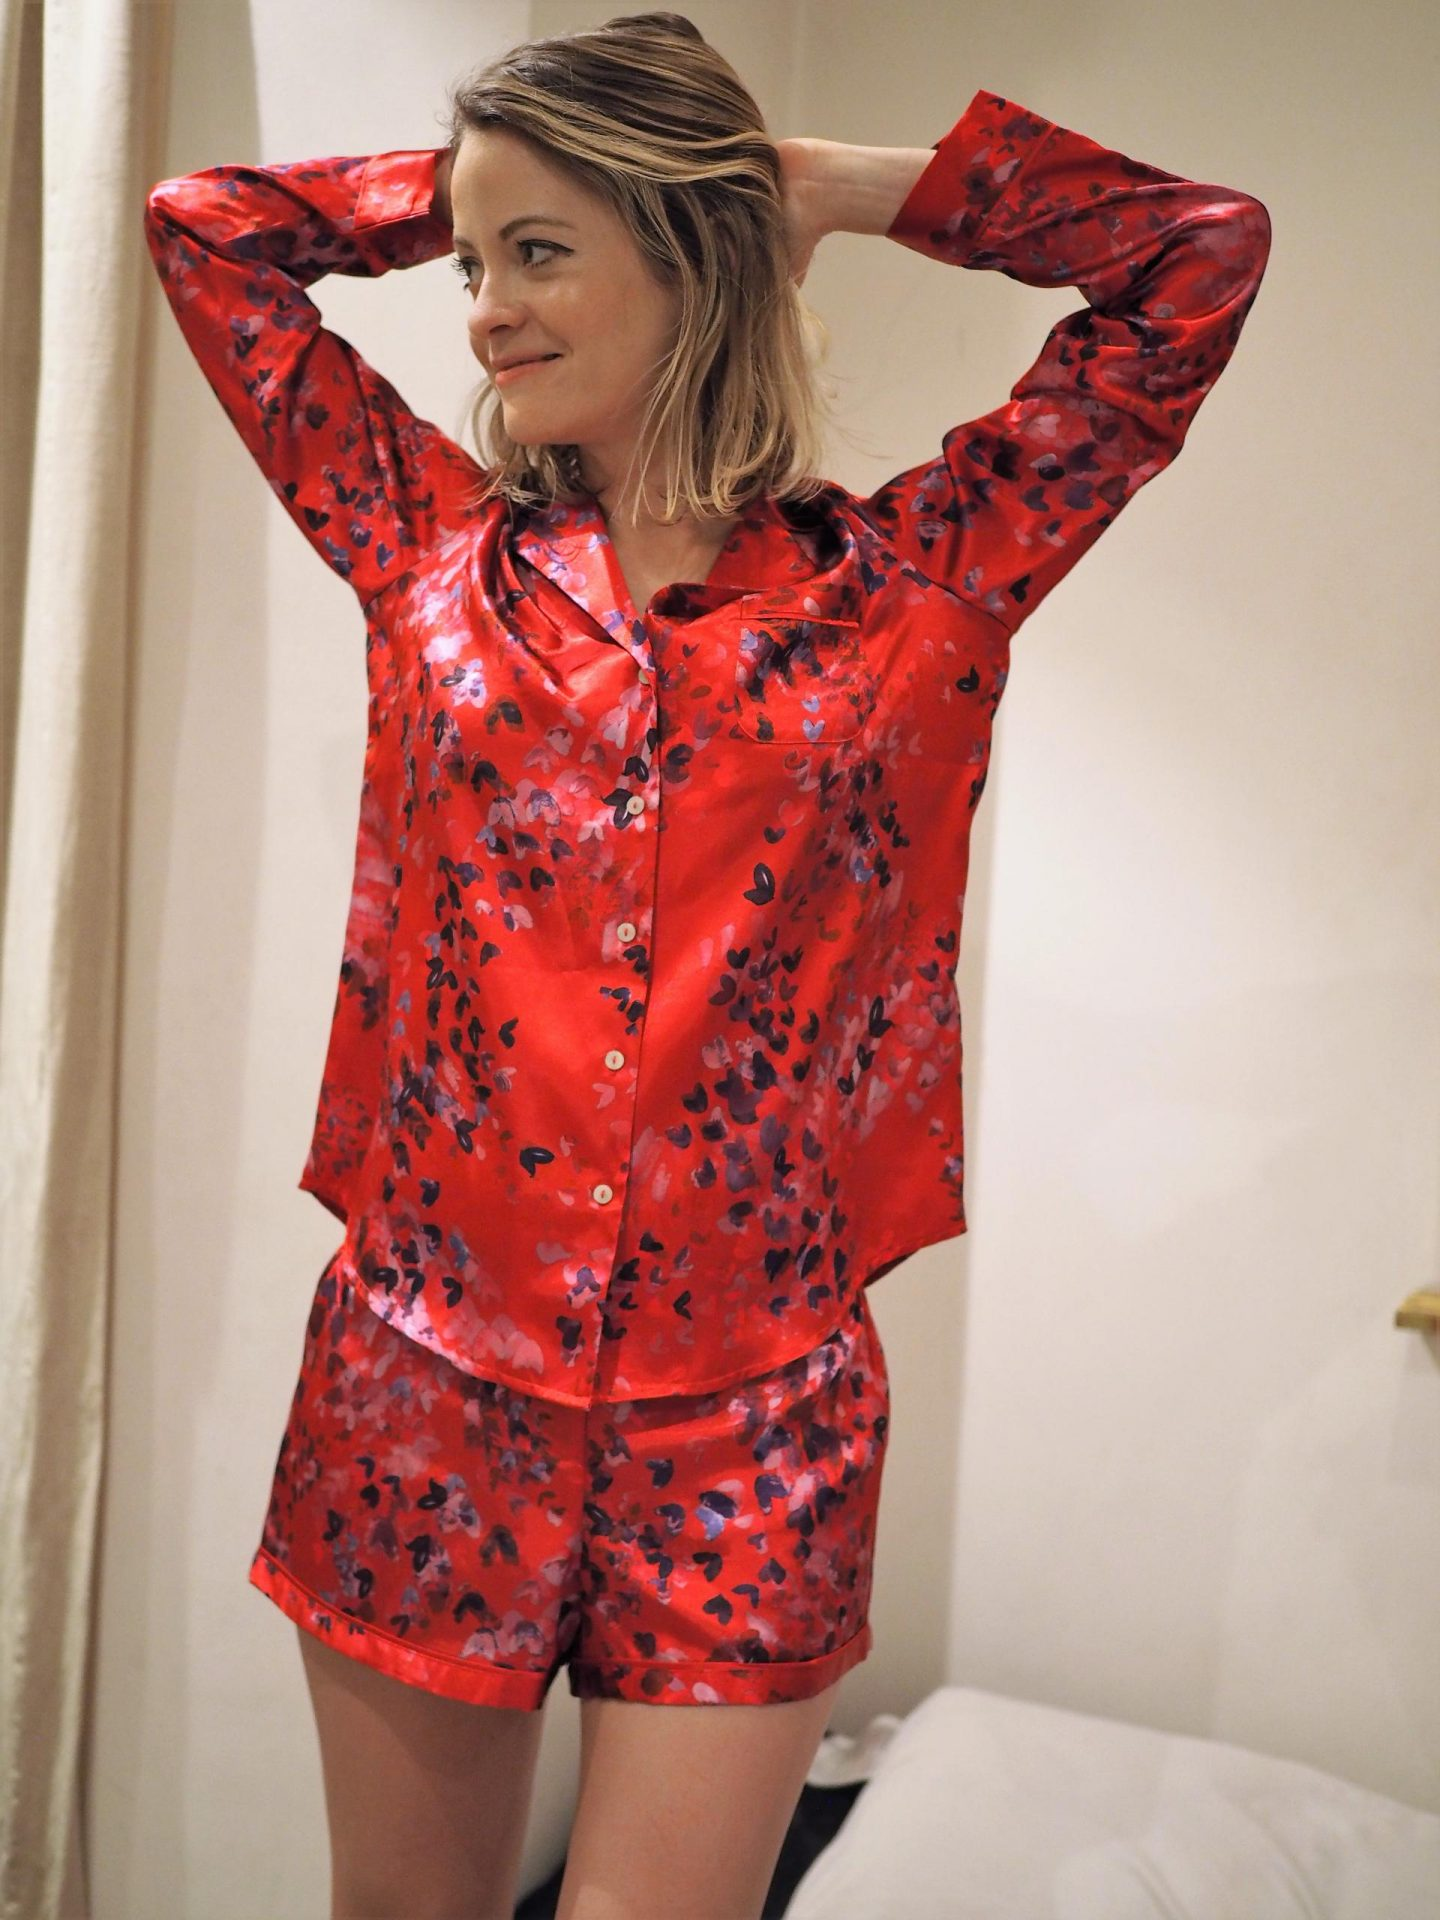 Red Floral Confetti Satin Long Sleeve Pyjama Set from The Collection